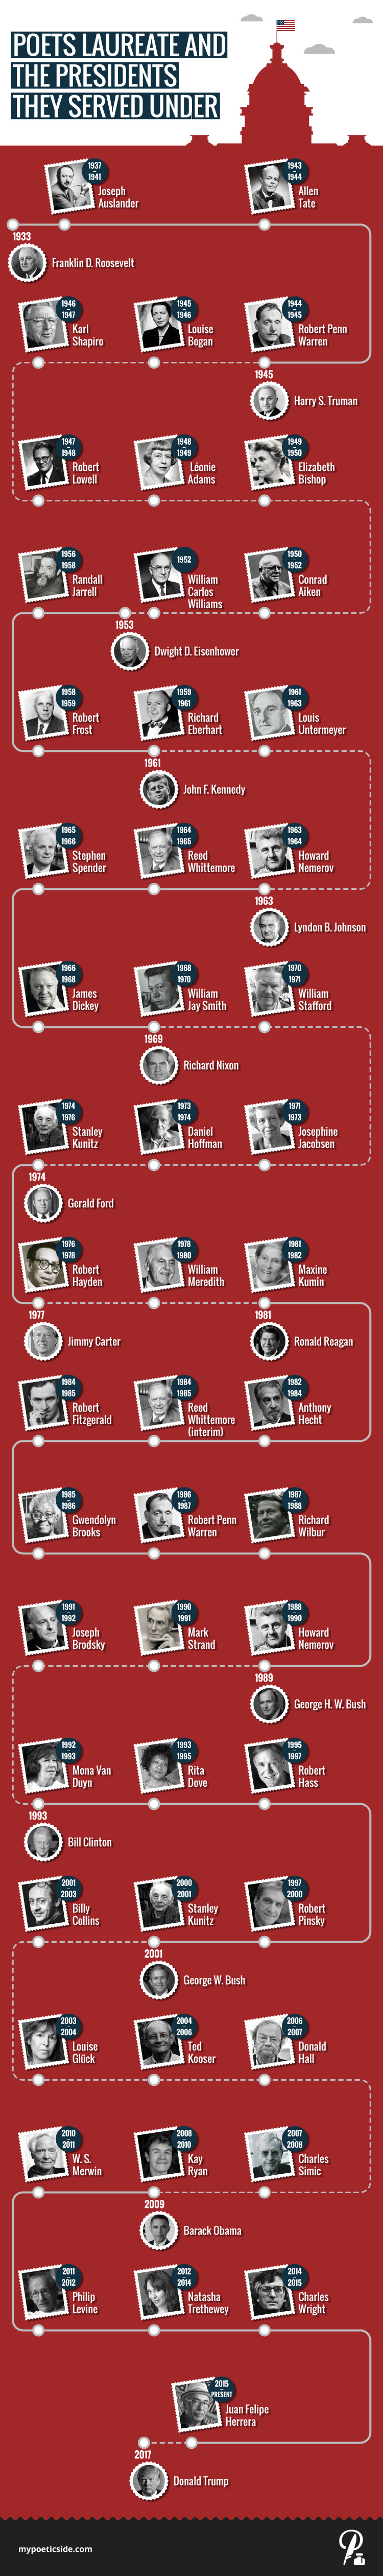 US Poet Laureates and the Presidents They Served Under